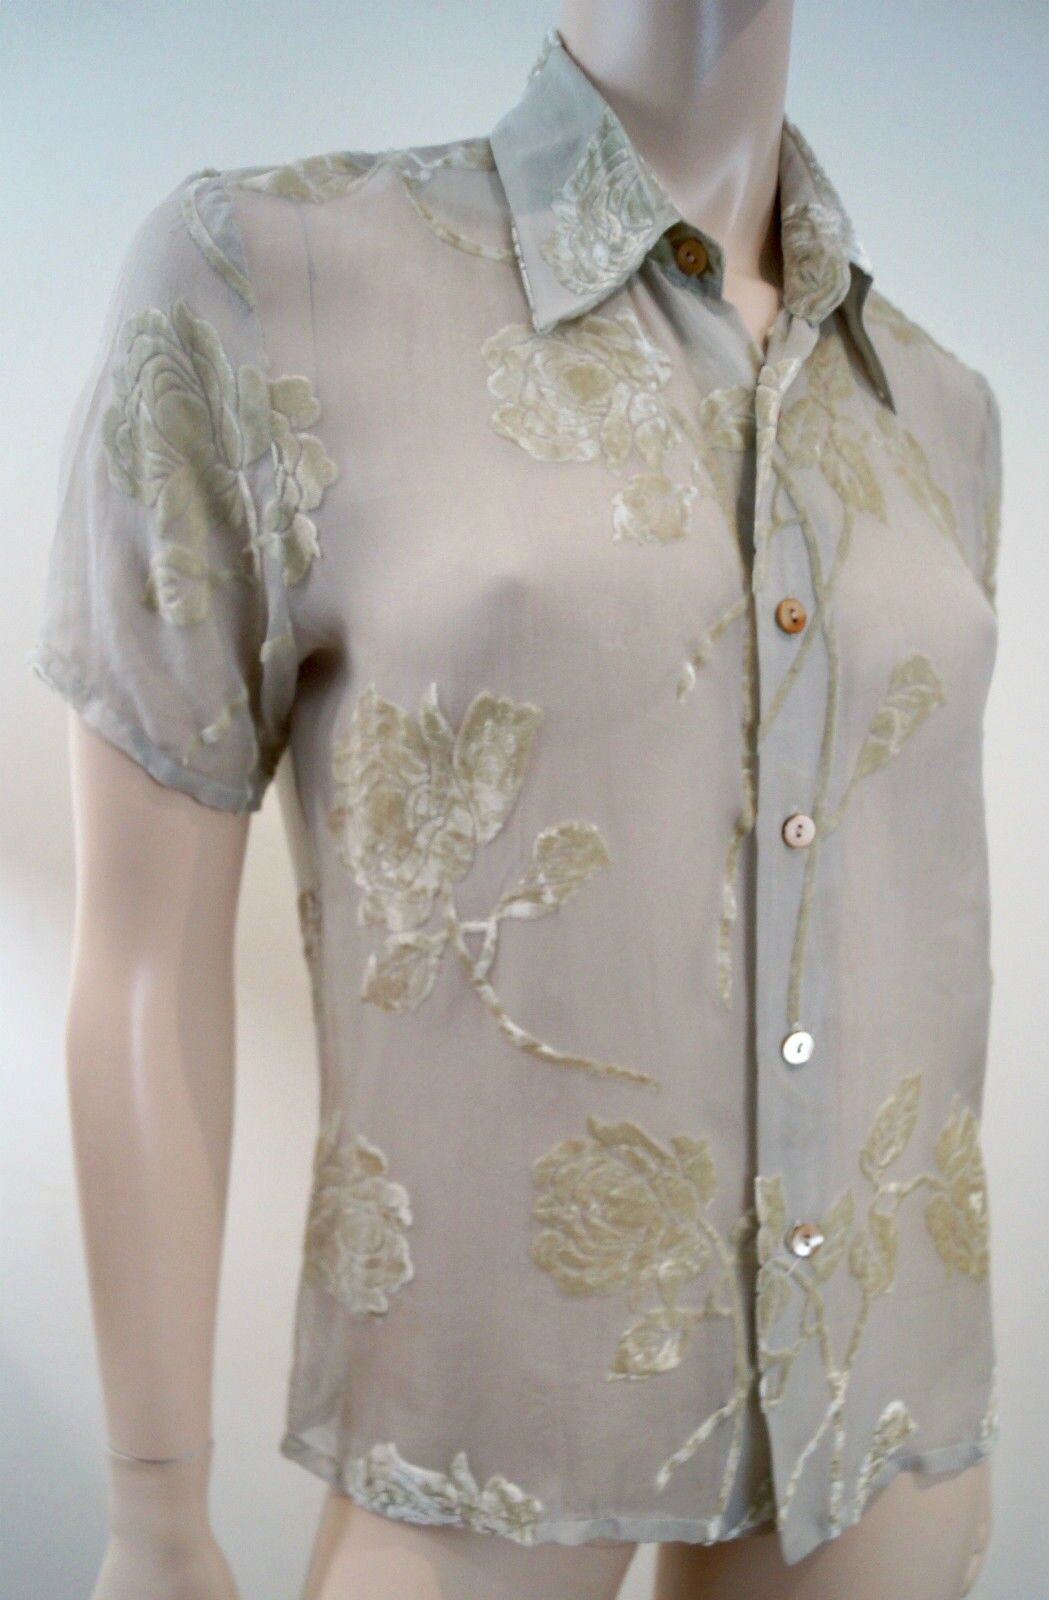 EQUIPMännerT Cream & Grün Tinge Silk Blend Floral Velvet Sheer Evening Blouse Sz M